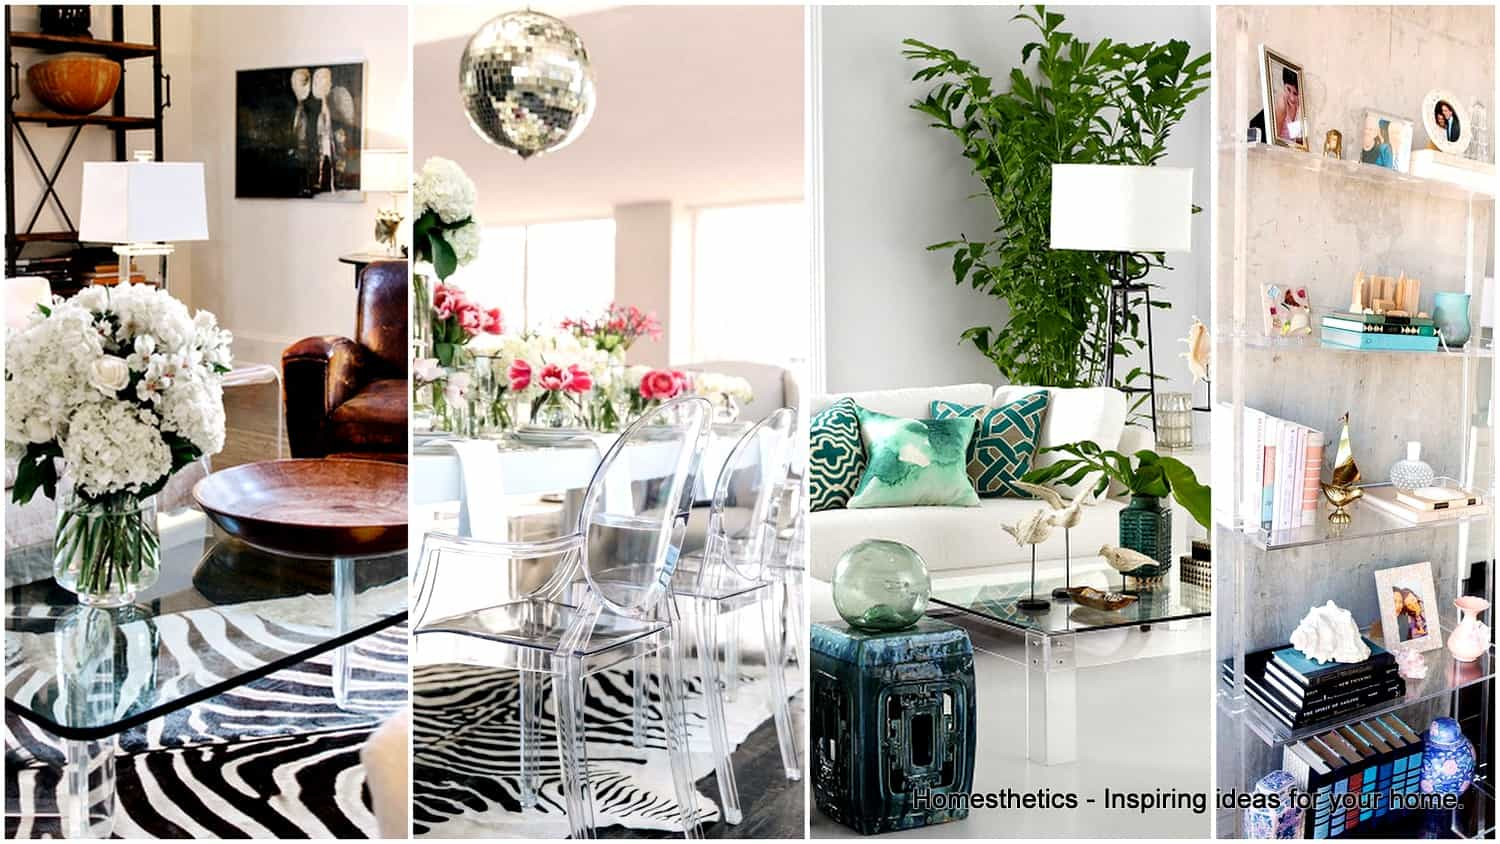 21 Remarkable Acrylic Furniture Ideas For A Spacious Home